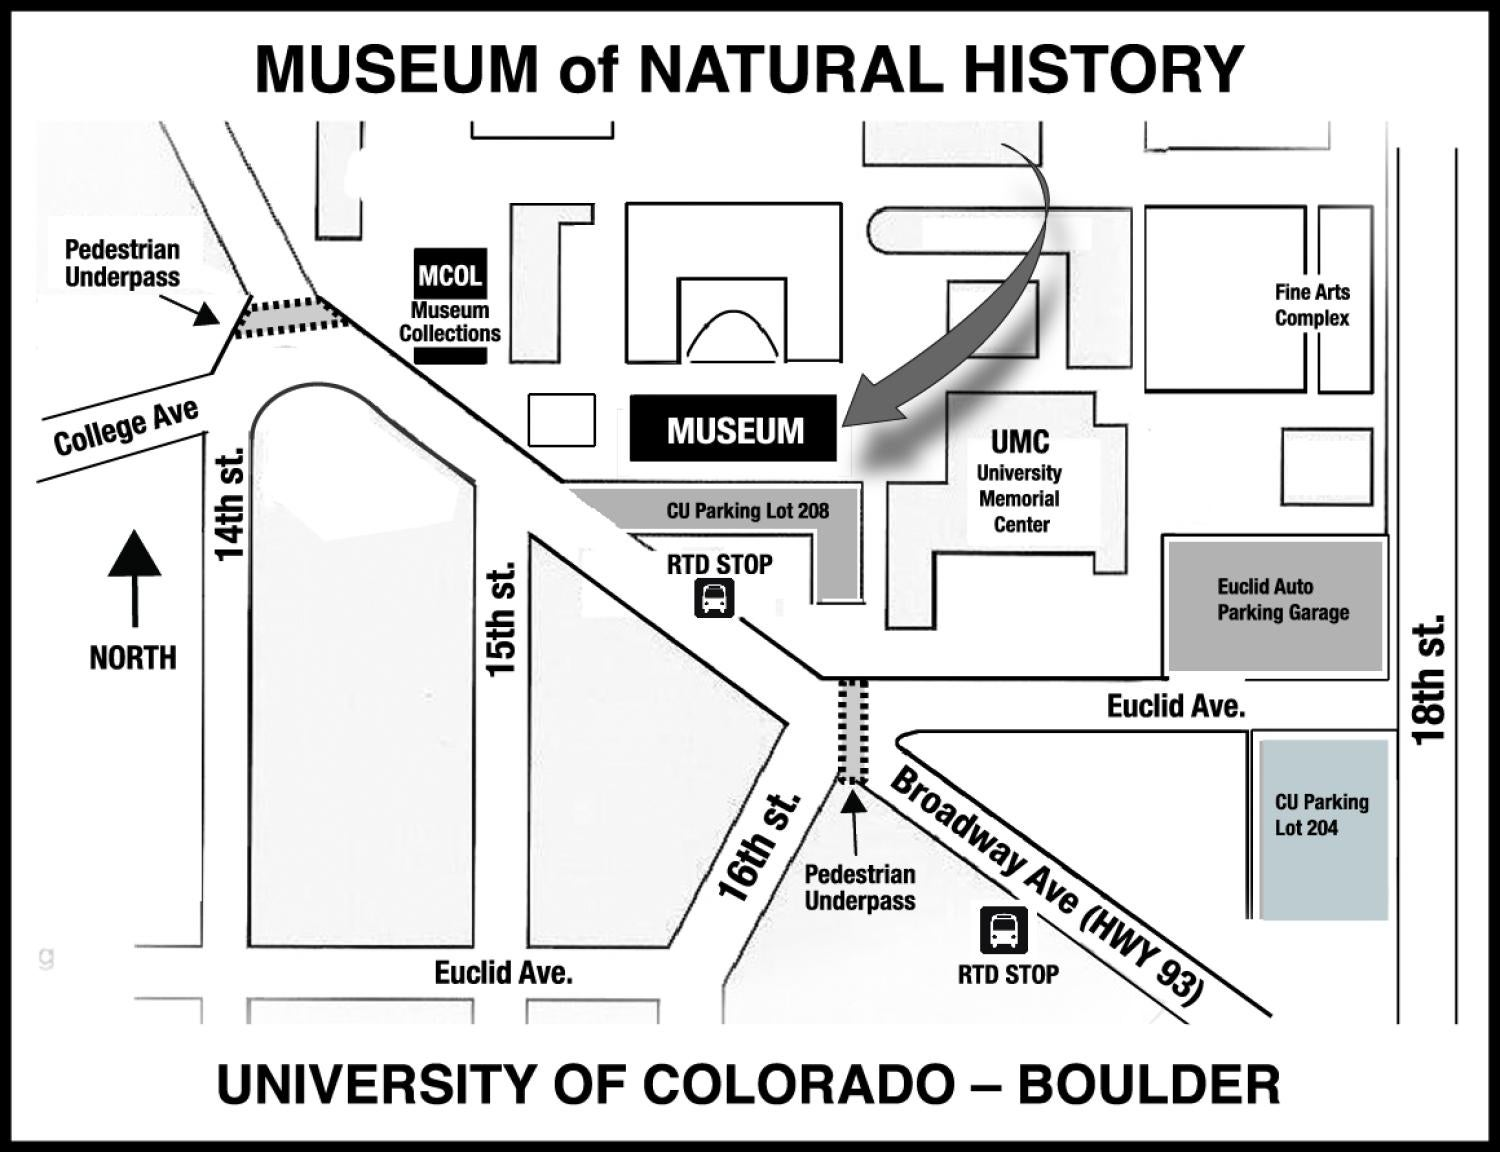 Map of campus showing the Museum of Natural History labelled